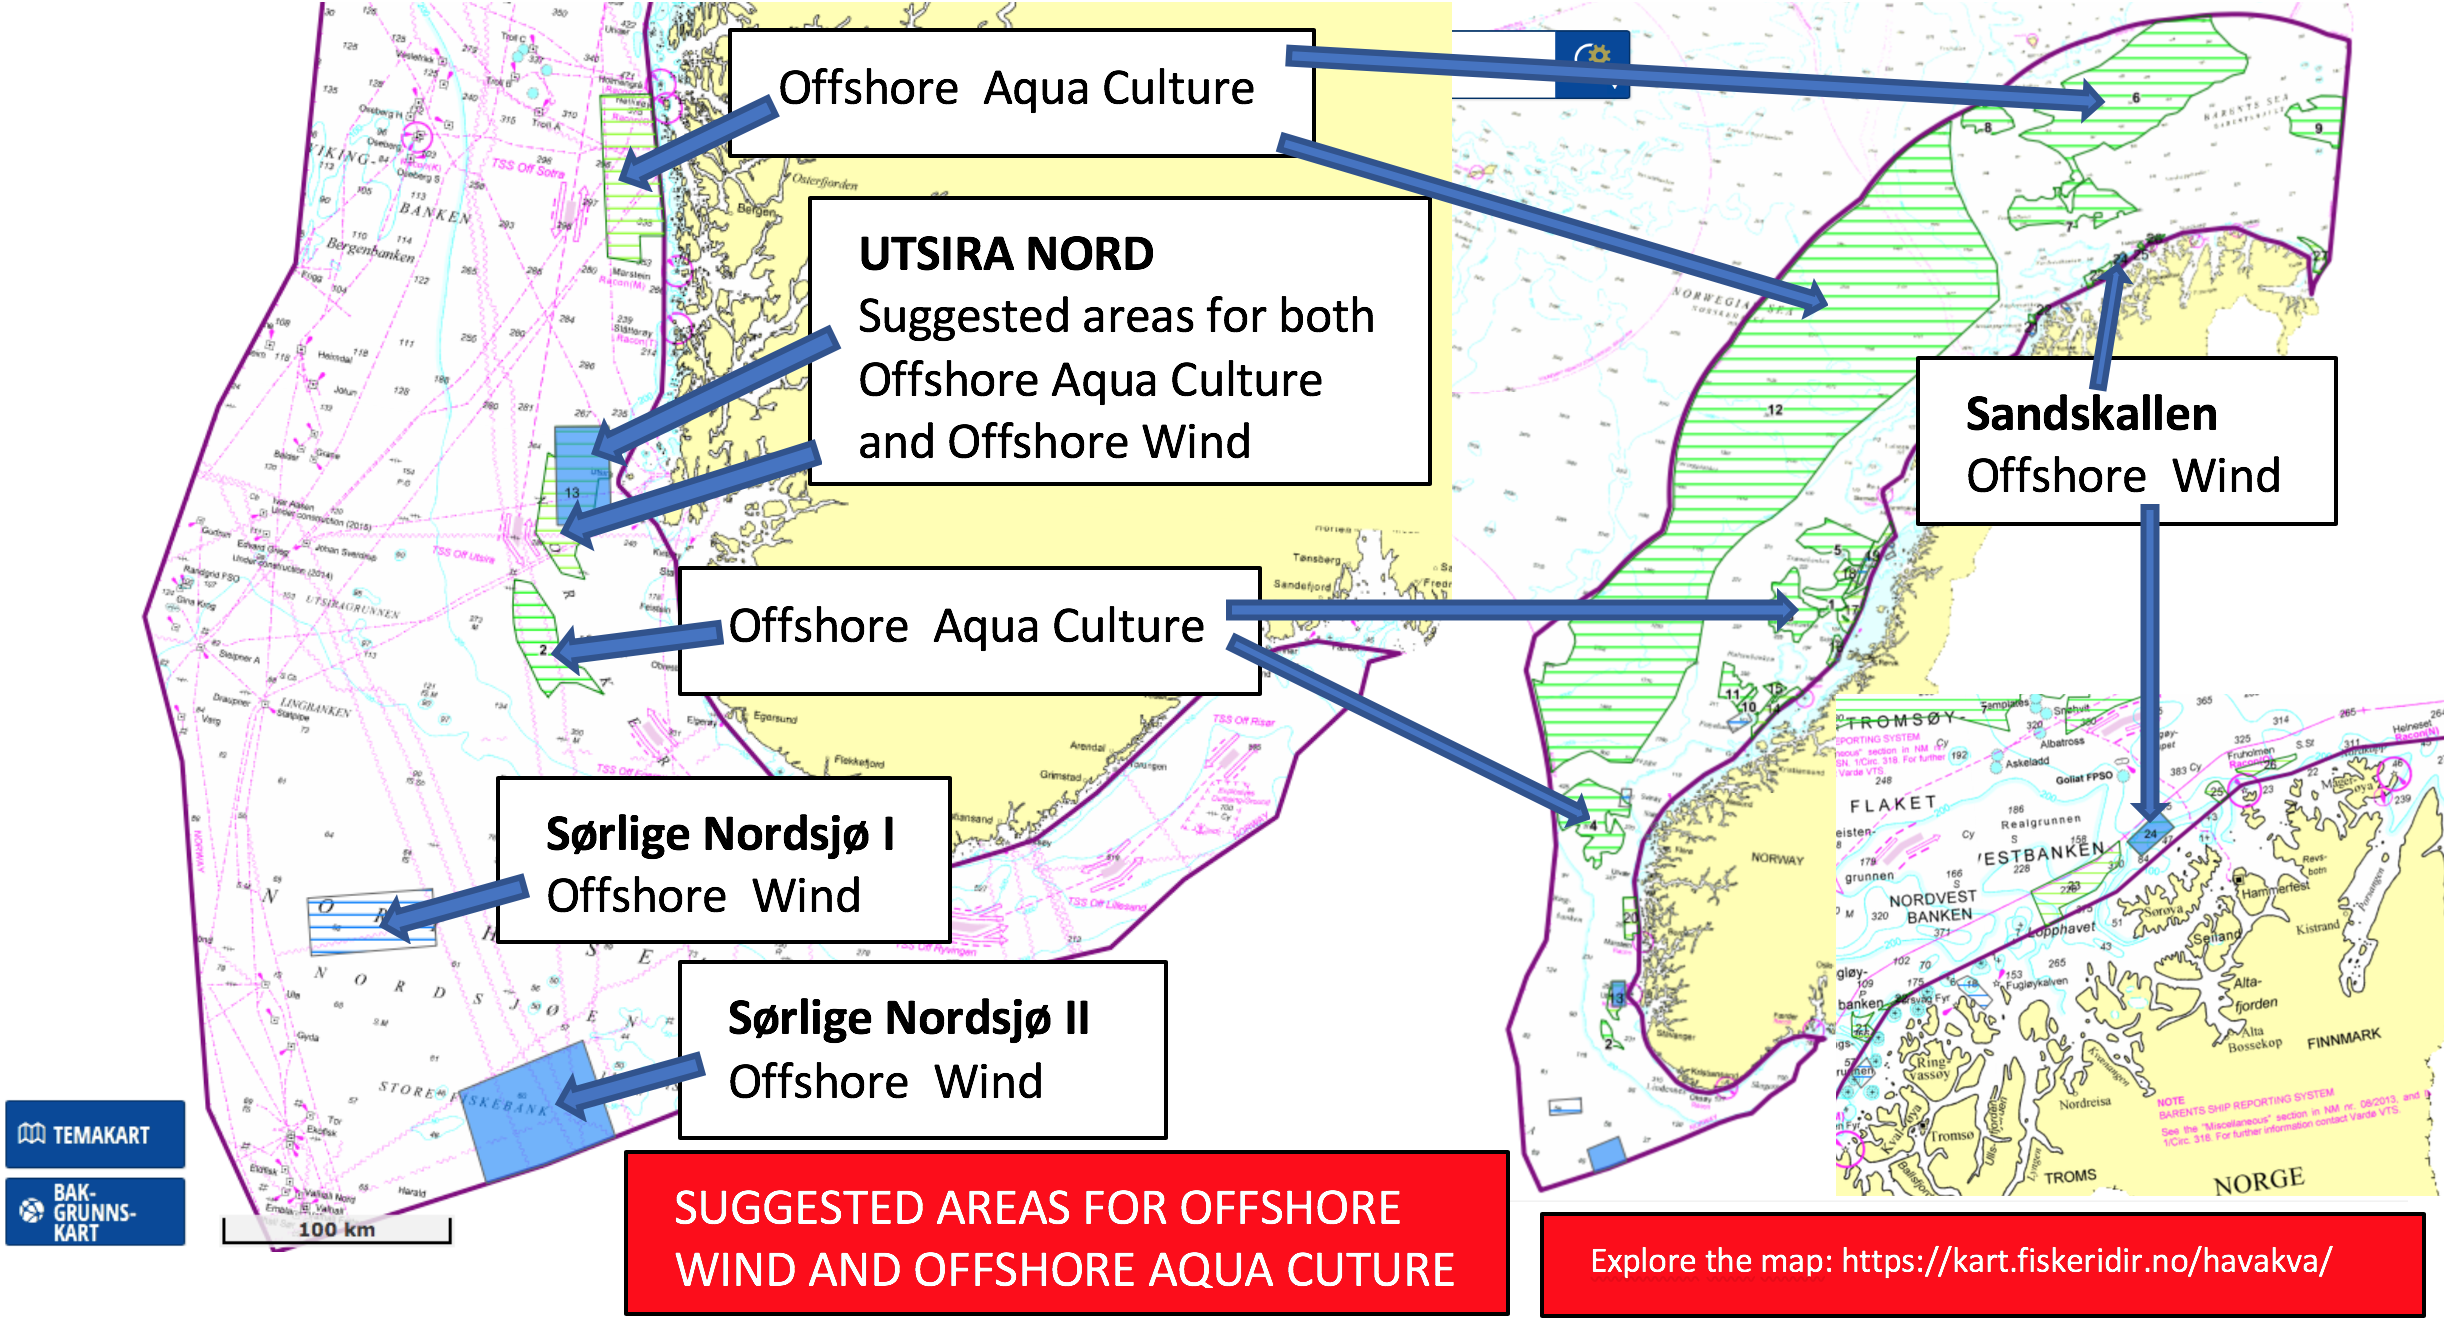 Suggested areas for offshore wind and offshore aquaculture